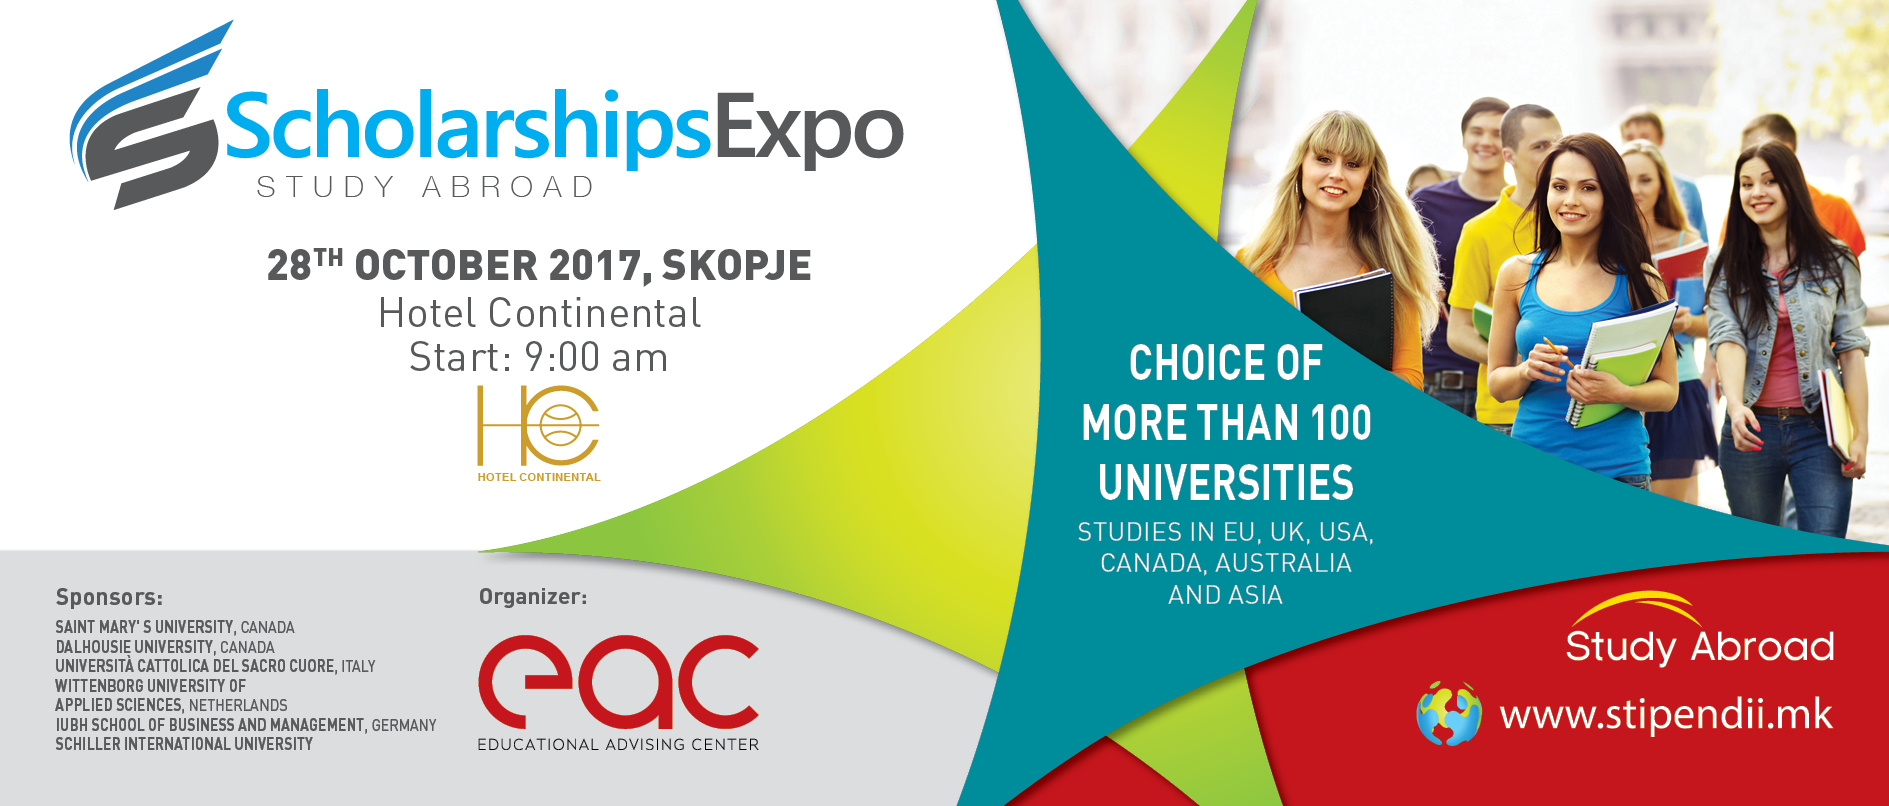 SCHOLARSHIPS EXPO - STUDY ABROAD 2017